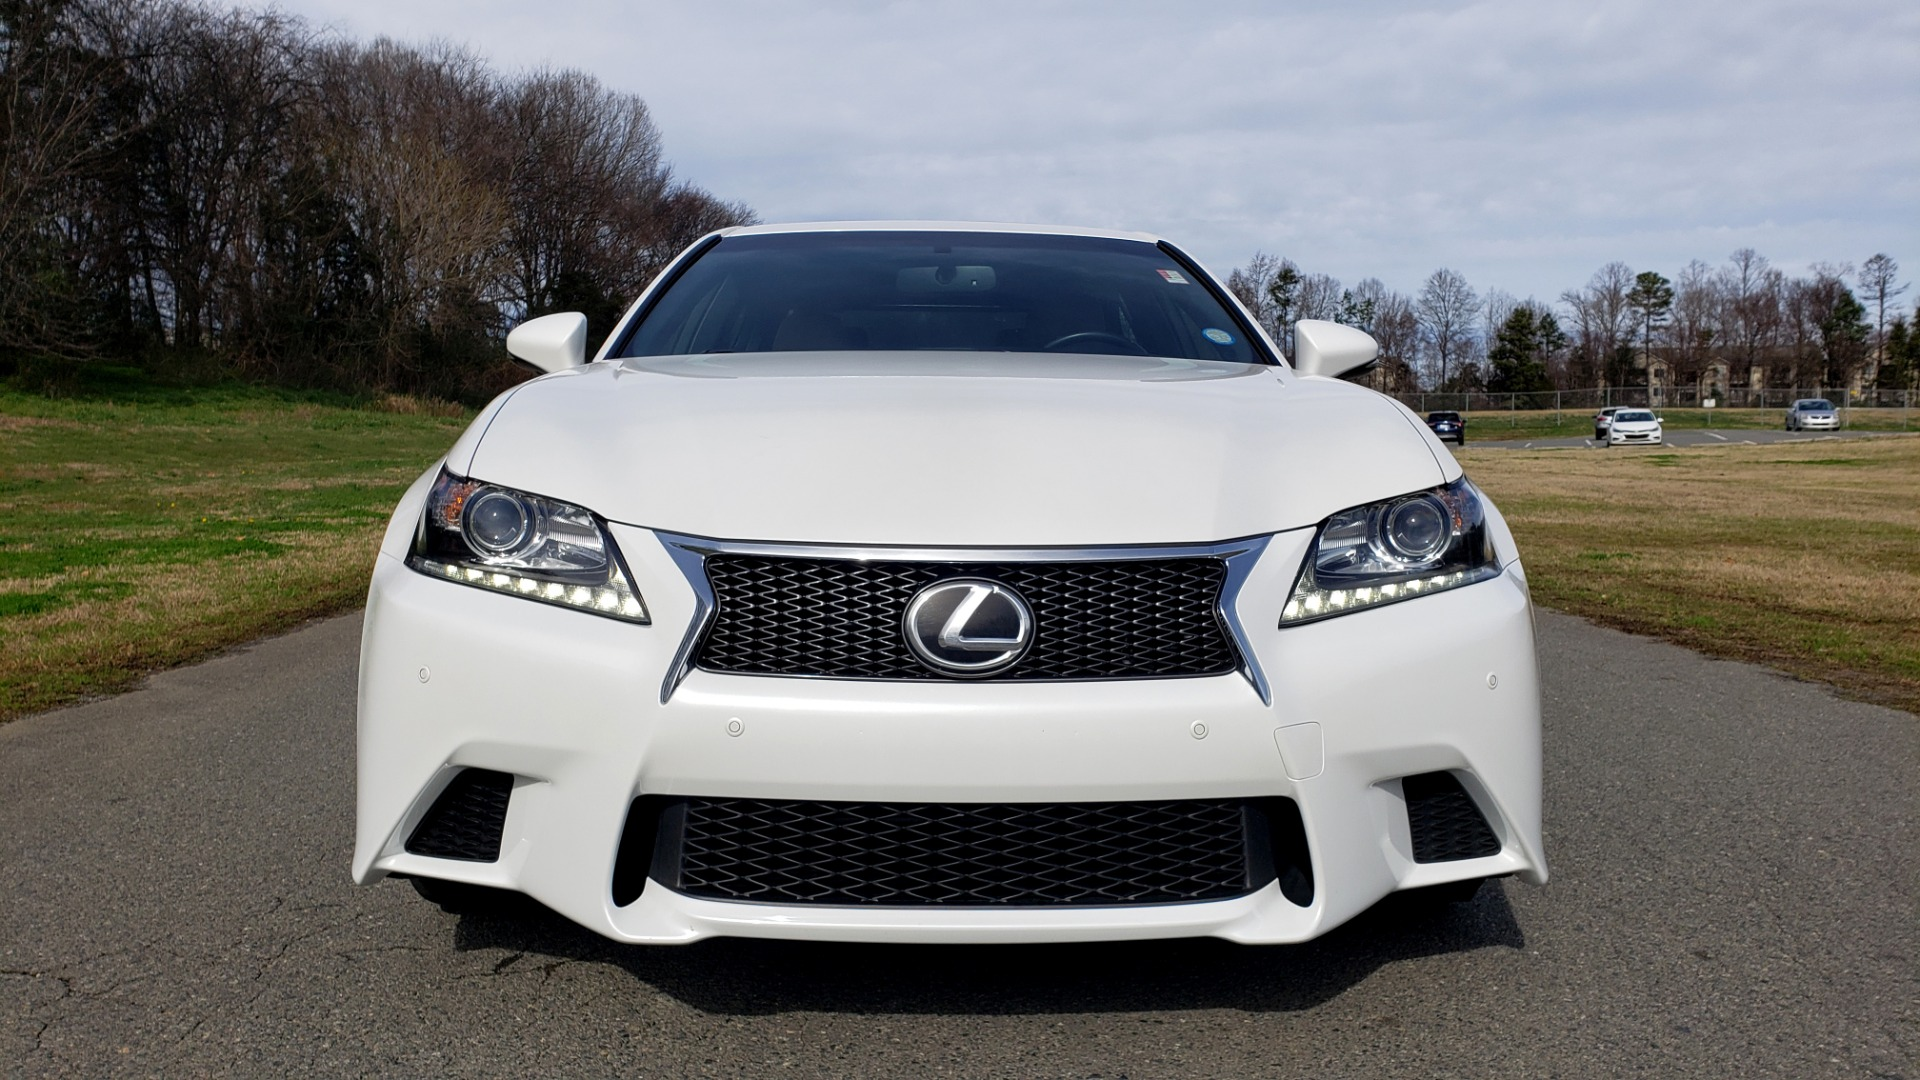 Used 2013 Lexus GS 350 F-SPORT / NAV / SUNROOF / BSM / PRK ASST / REARVIEW for sale Sold at Formula Imports in Charlotte NC 28227 16